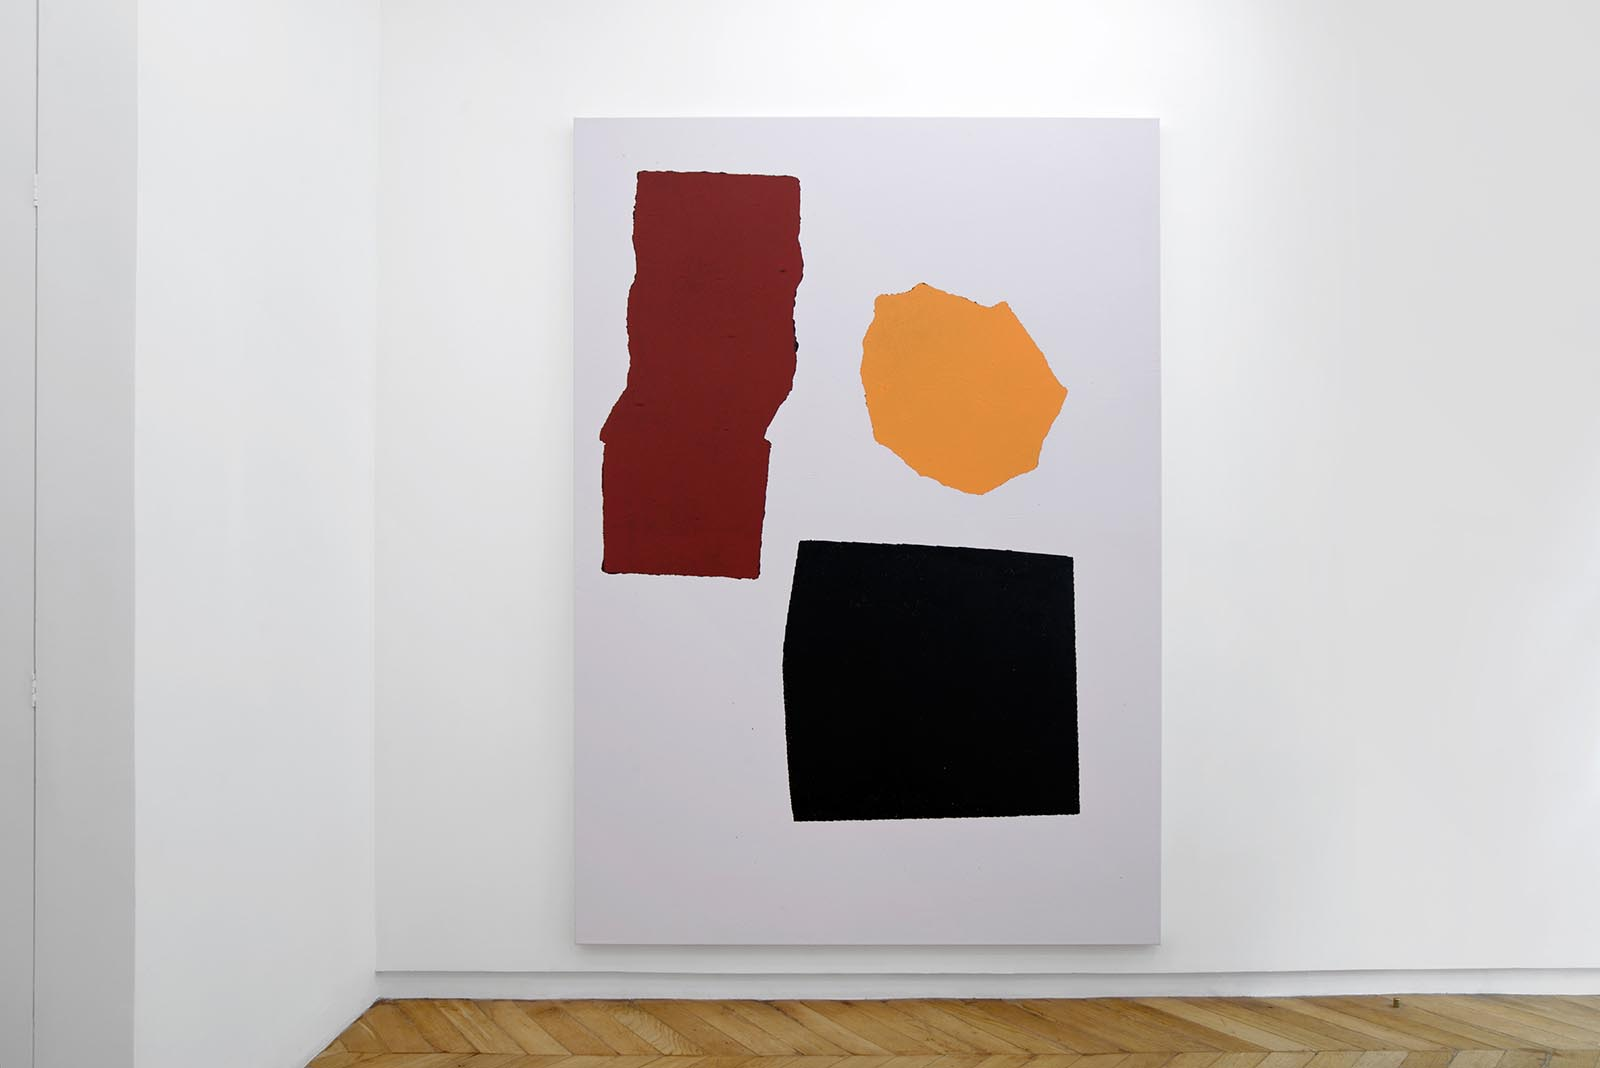 Linus-Bill-+-Adrien-Horni_Gemalde_2015_exhibition-view_1_1600